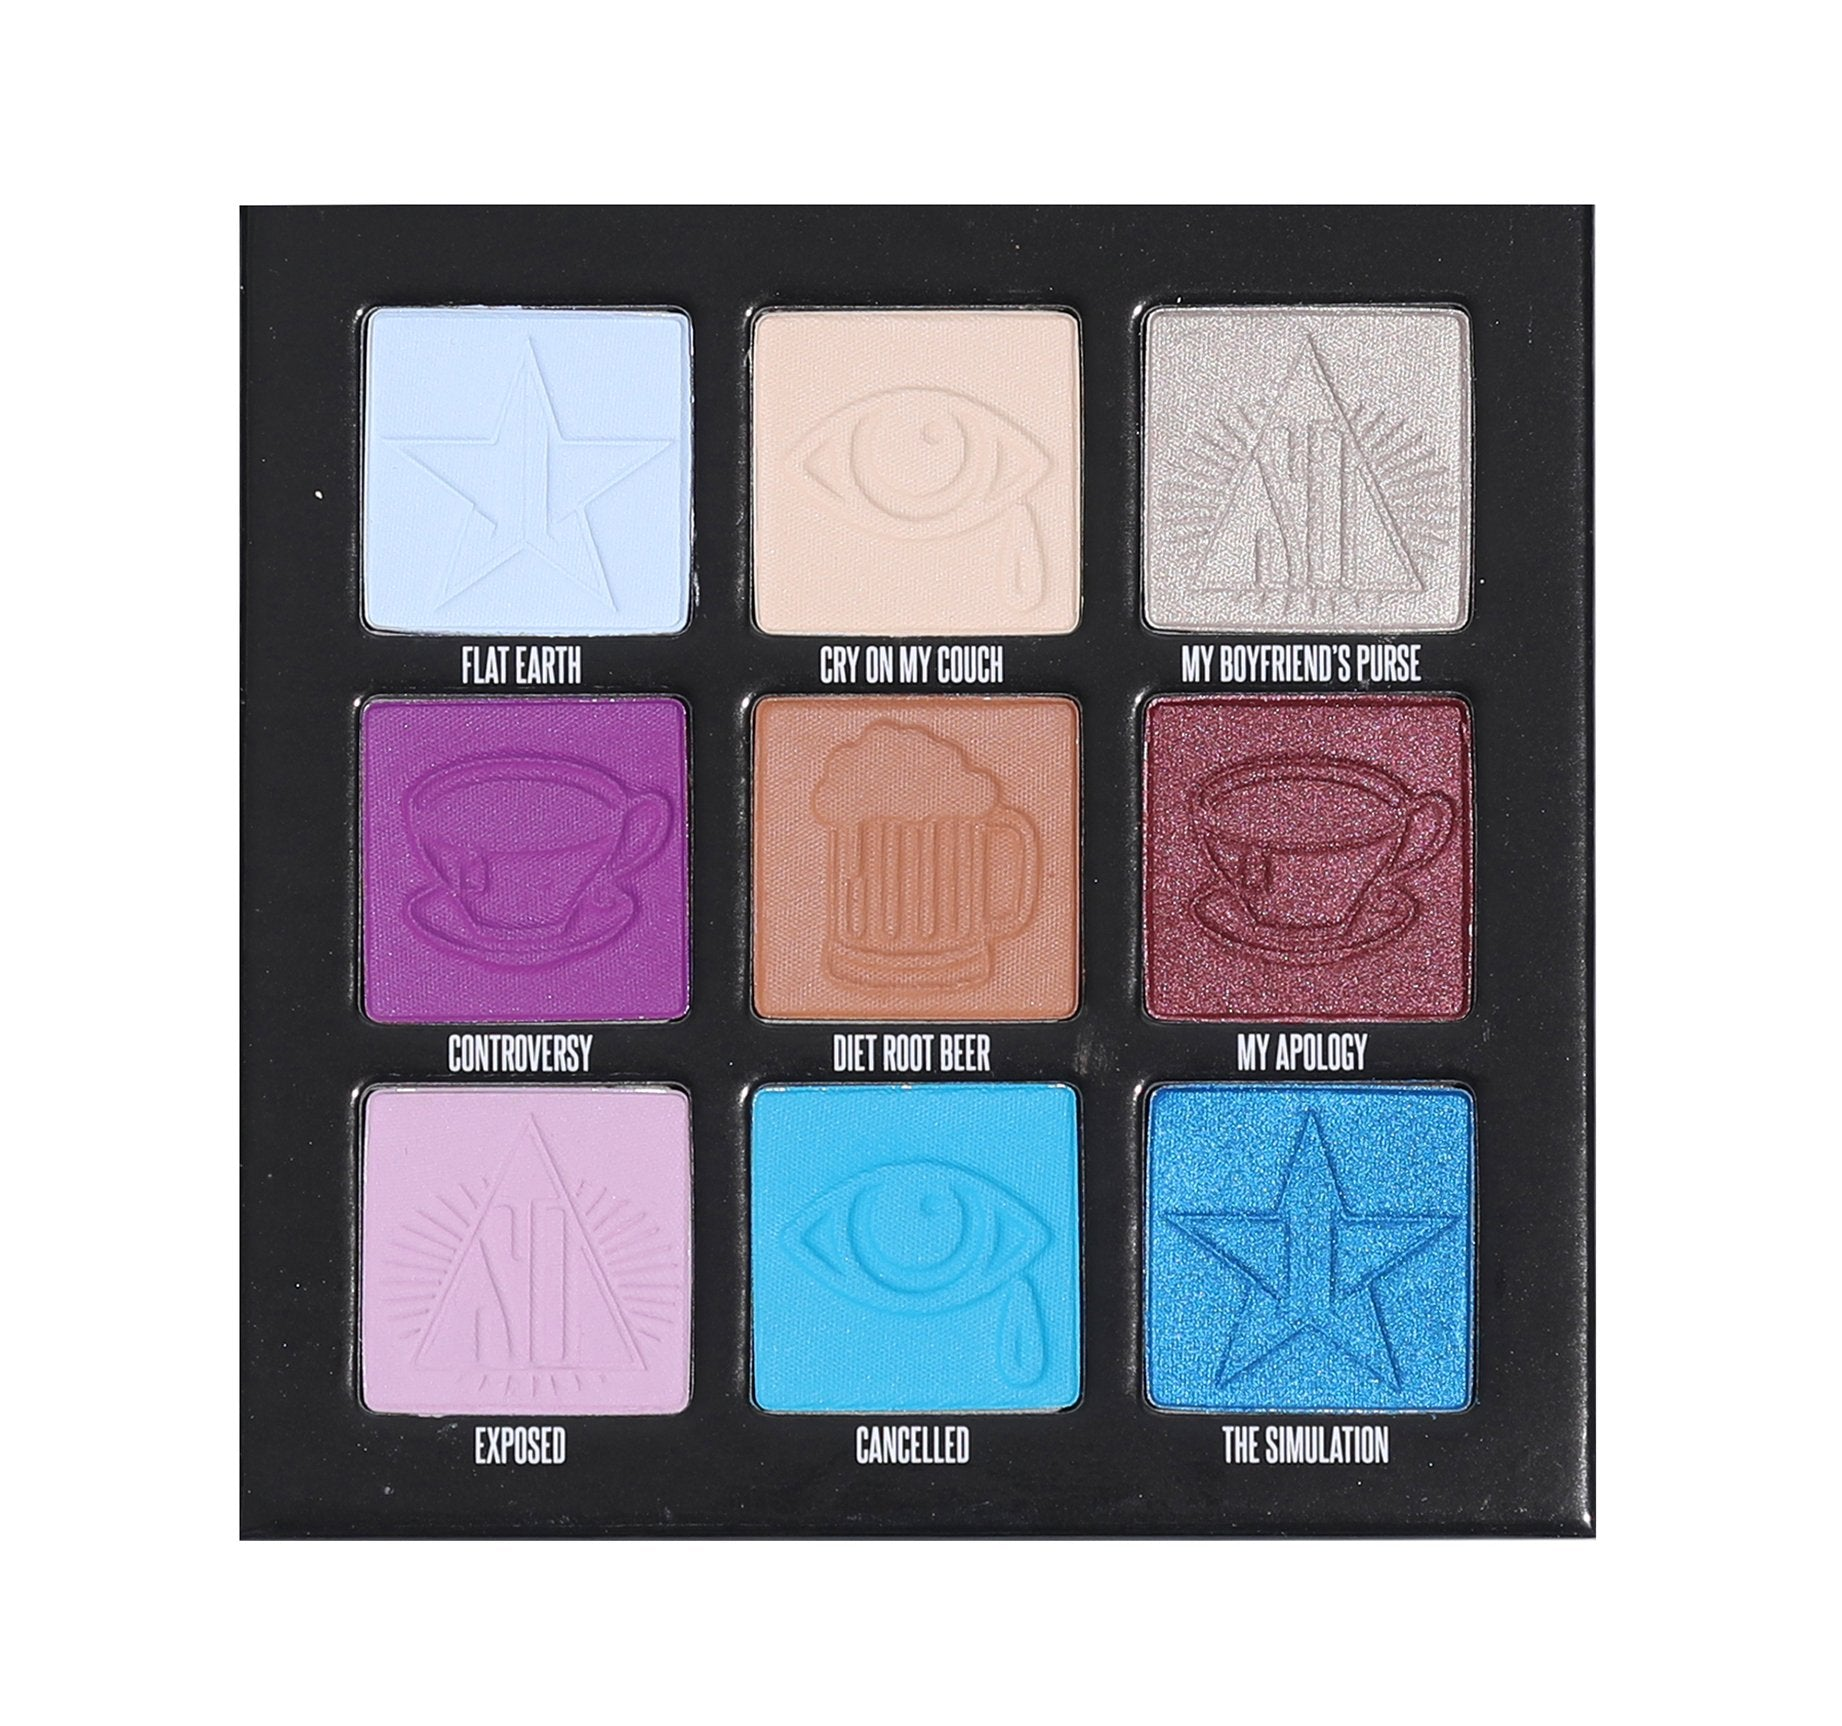 MINI CONTROVERSY EYESHADOW/ PRESSED PIGMENT PALETTE, view larger image